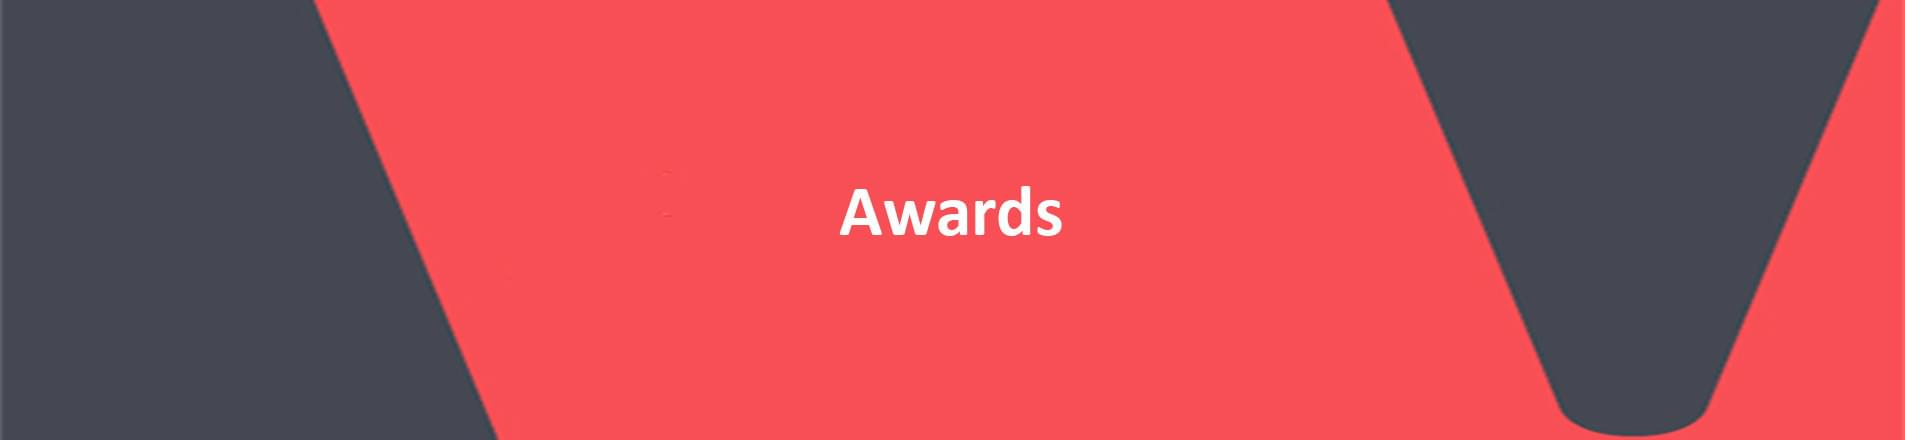 The word awards on VERCIDA branded background